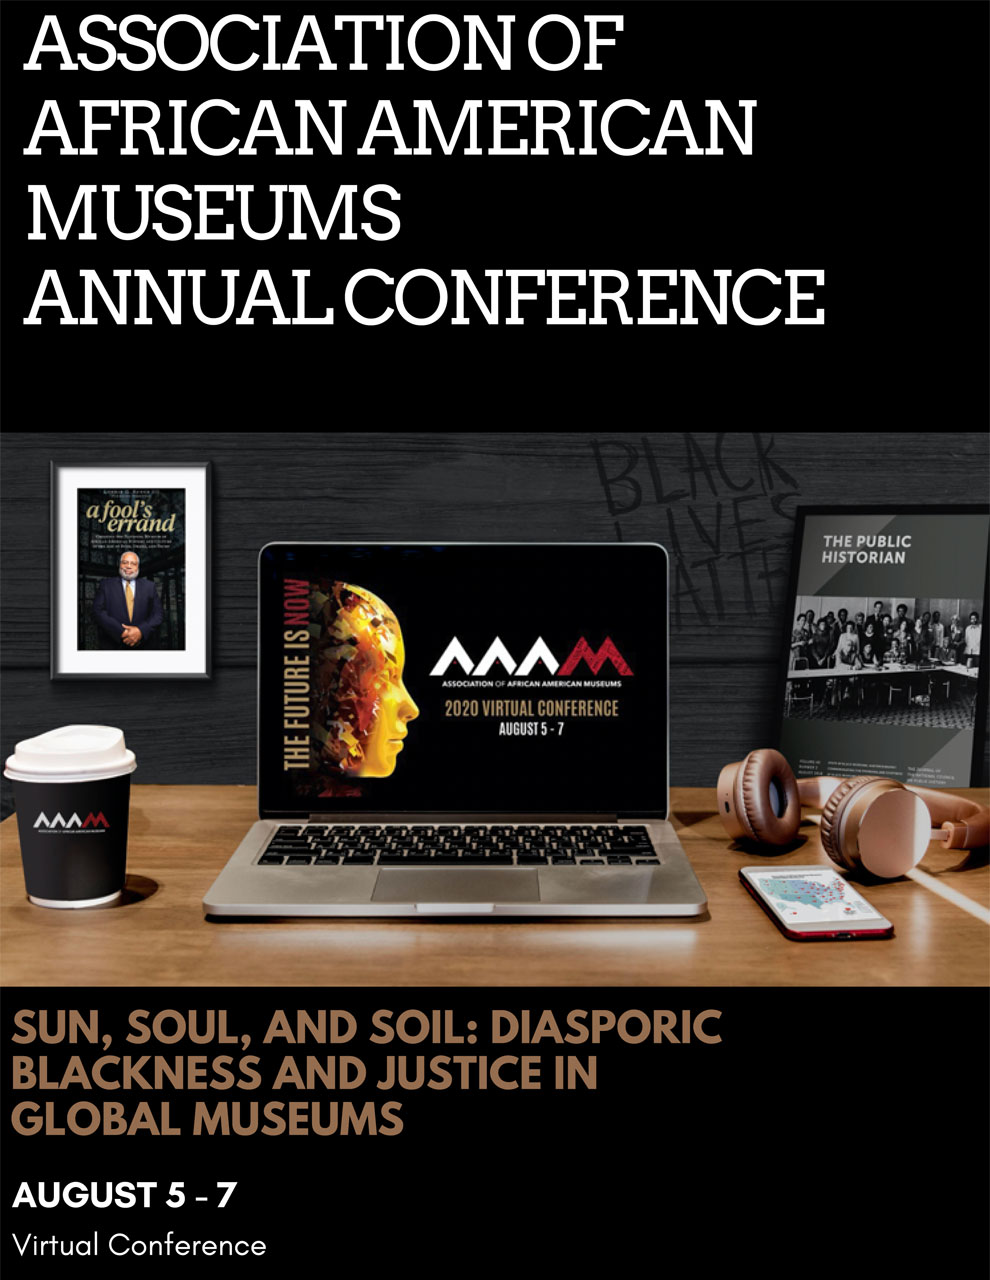 2020 Association of African American Museums program cover